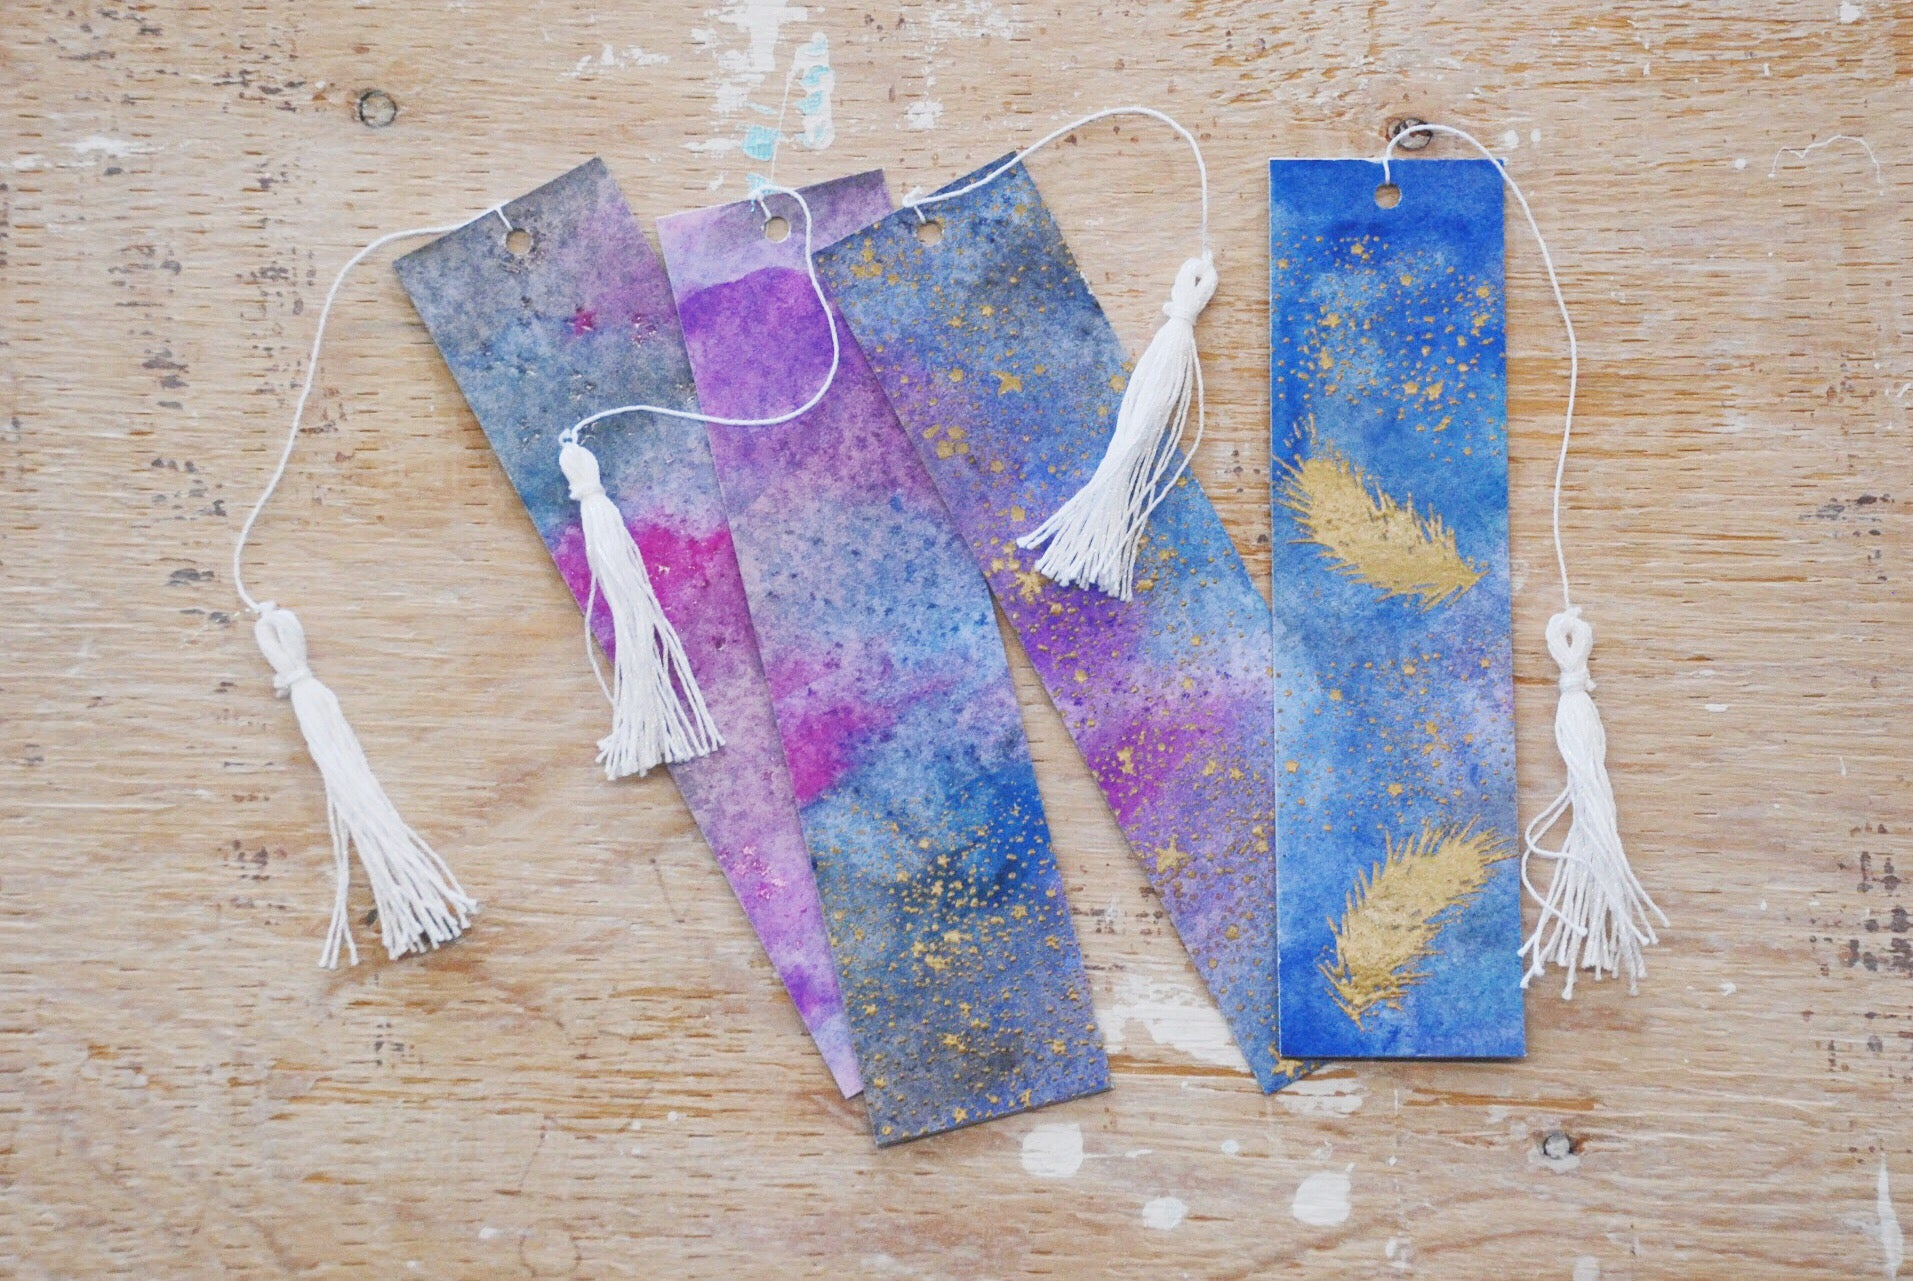 Galaxy Away bookmarks | 5 Things to Give: 2018 Gift Guide | Thoughtfully Handmade